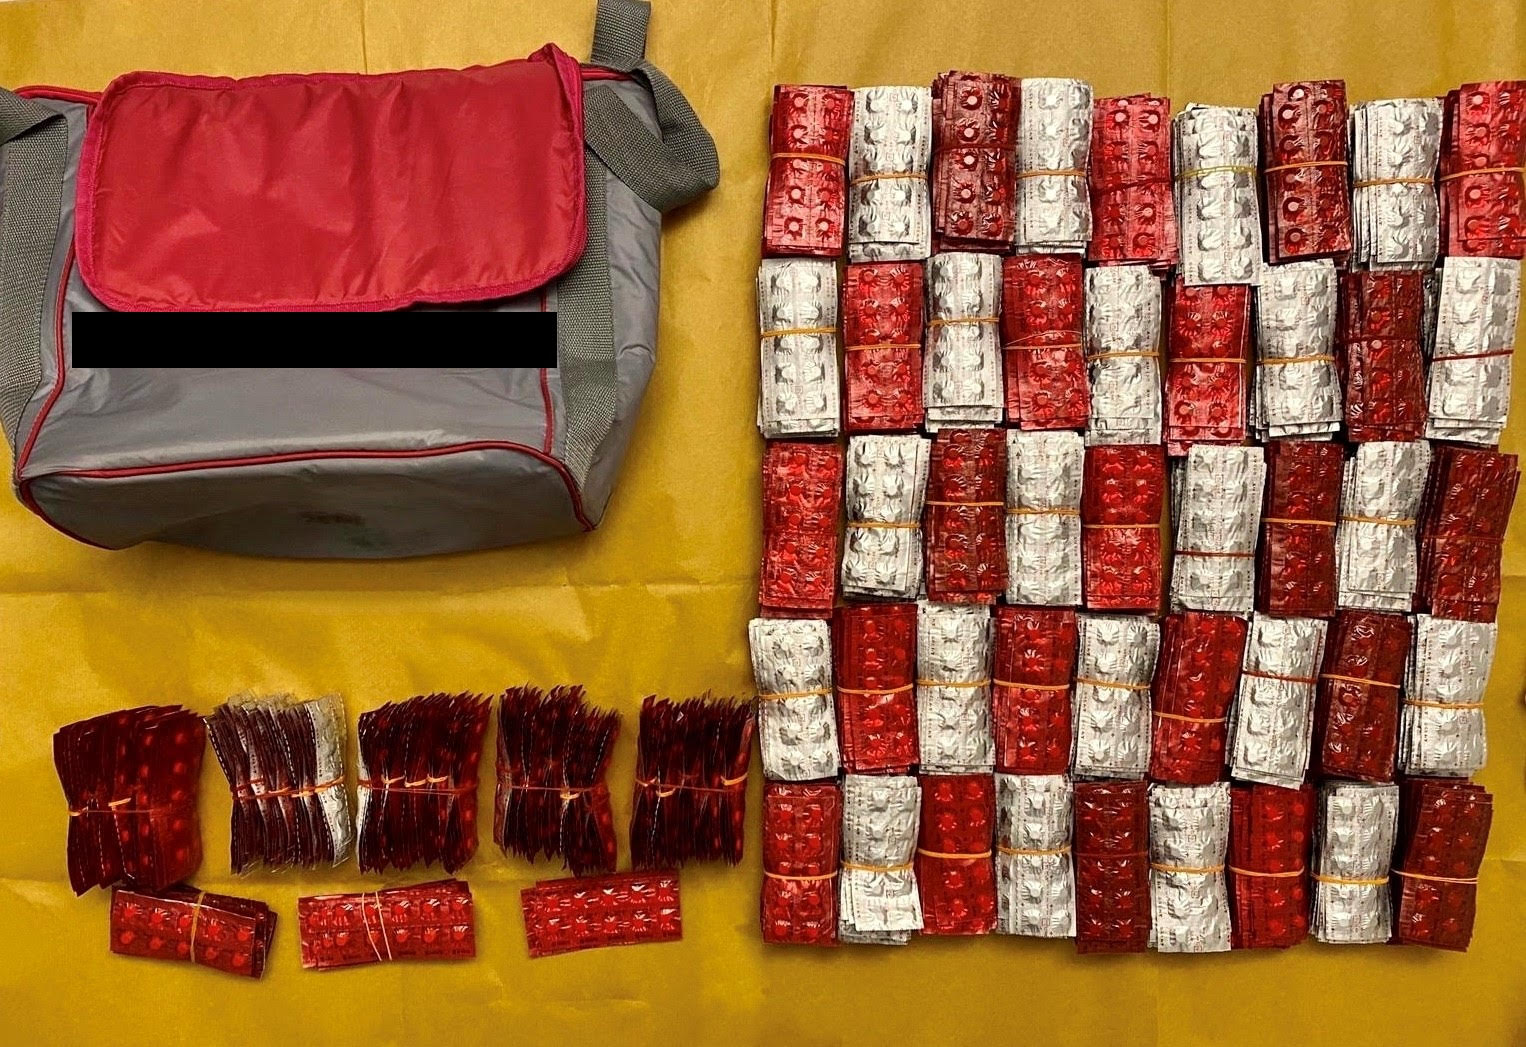 Photo 3 (CNB) - 13,970 Erimin-5 tablets seized from a hotel located in the vicinity of Beach Road.